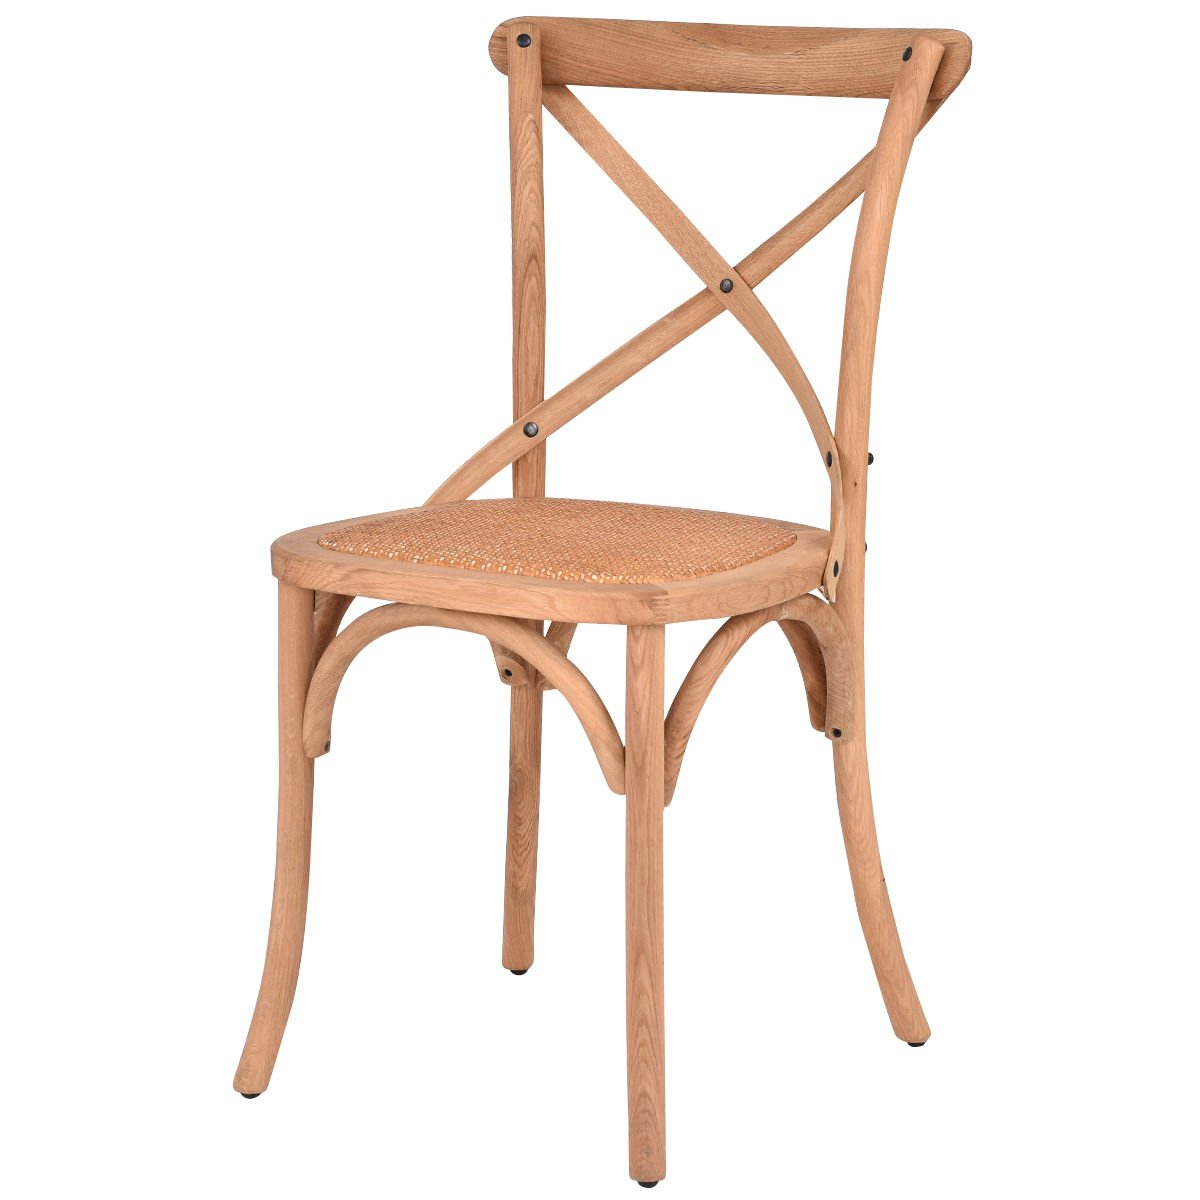 Amazon.com - COSTWAY Cross Back Antique Style Dining Chair with Rattan Seat  (Natural) - Chairs - Amazon.com - COSTWAY Cross Back Antique Style Dining Chair With